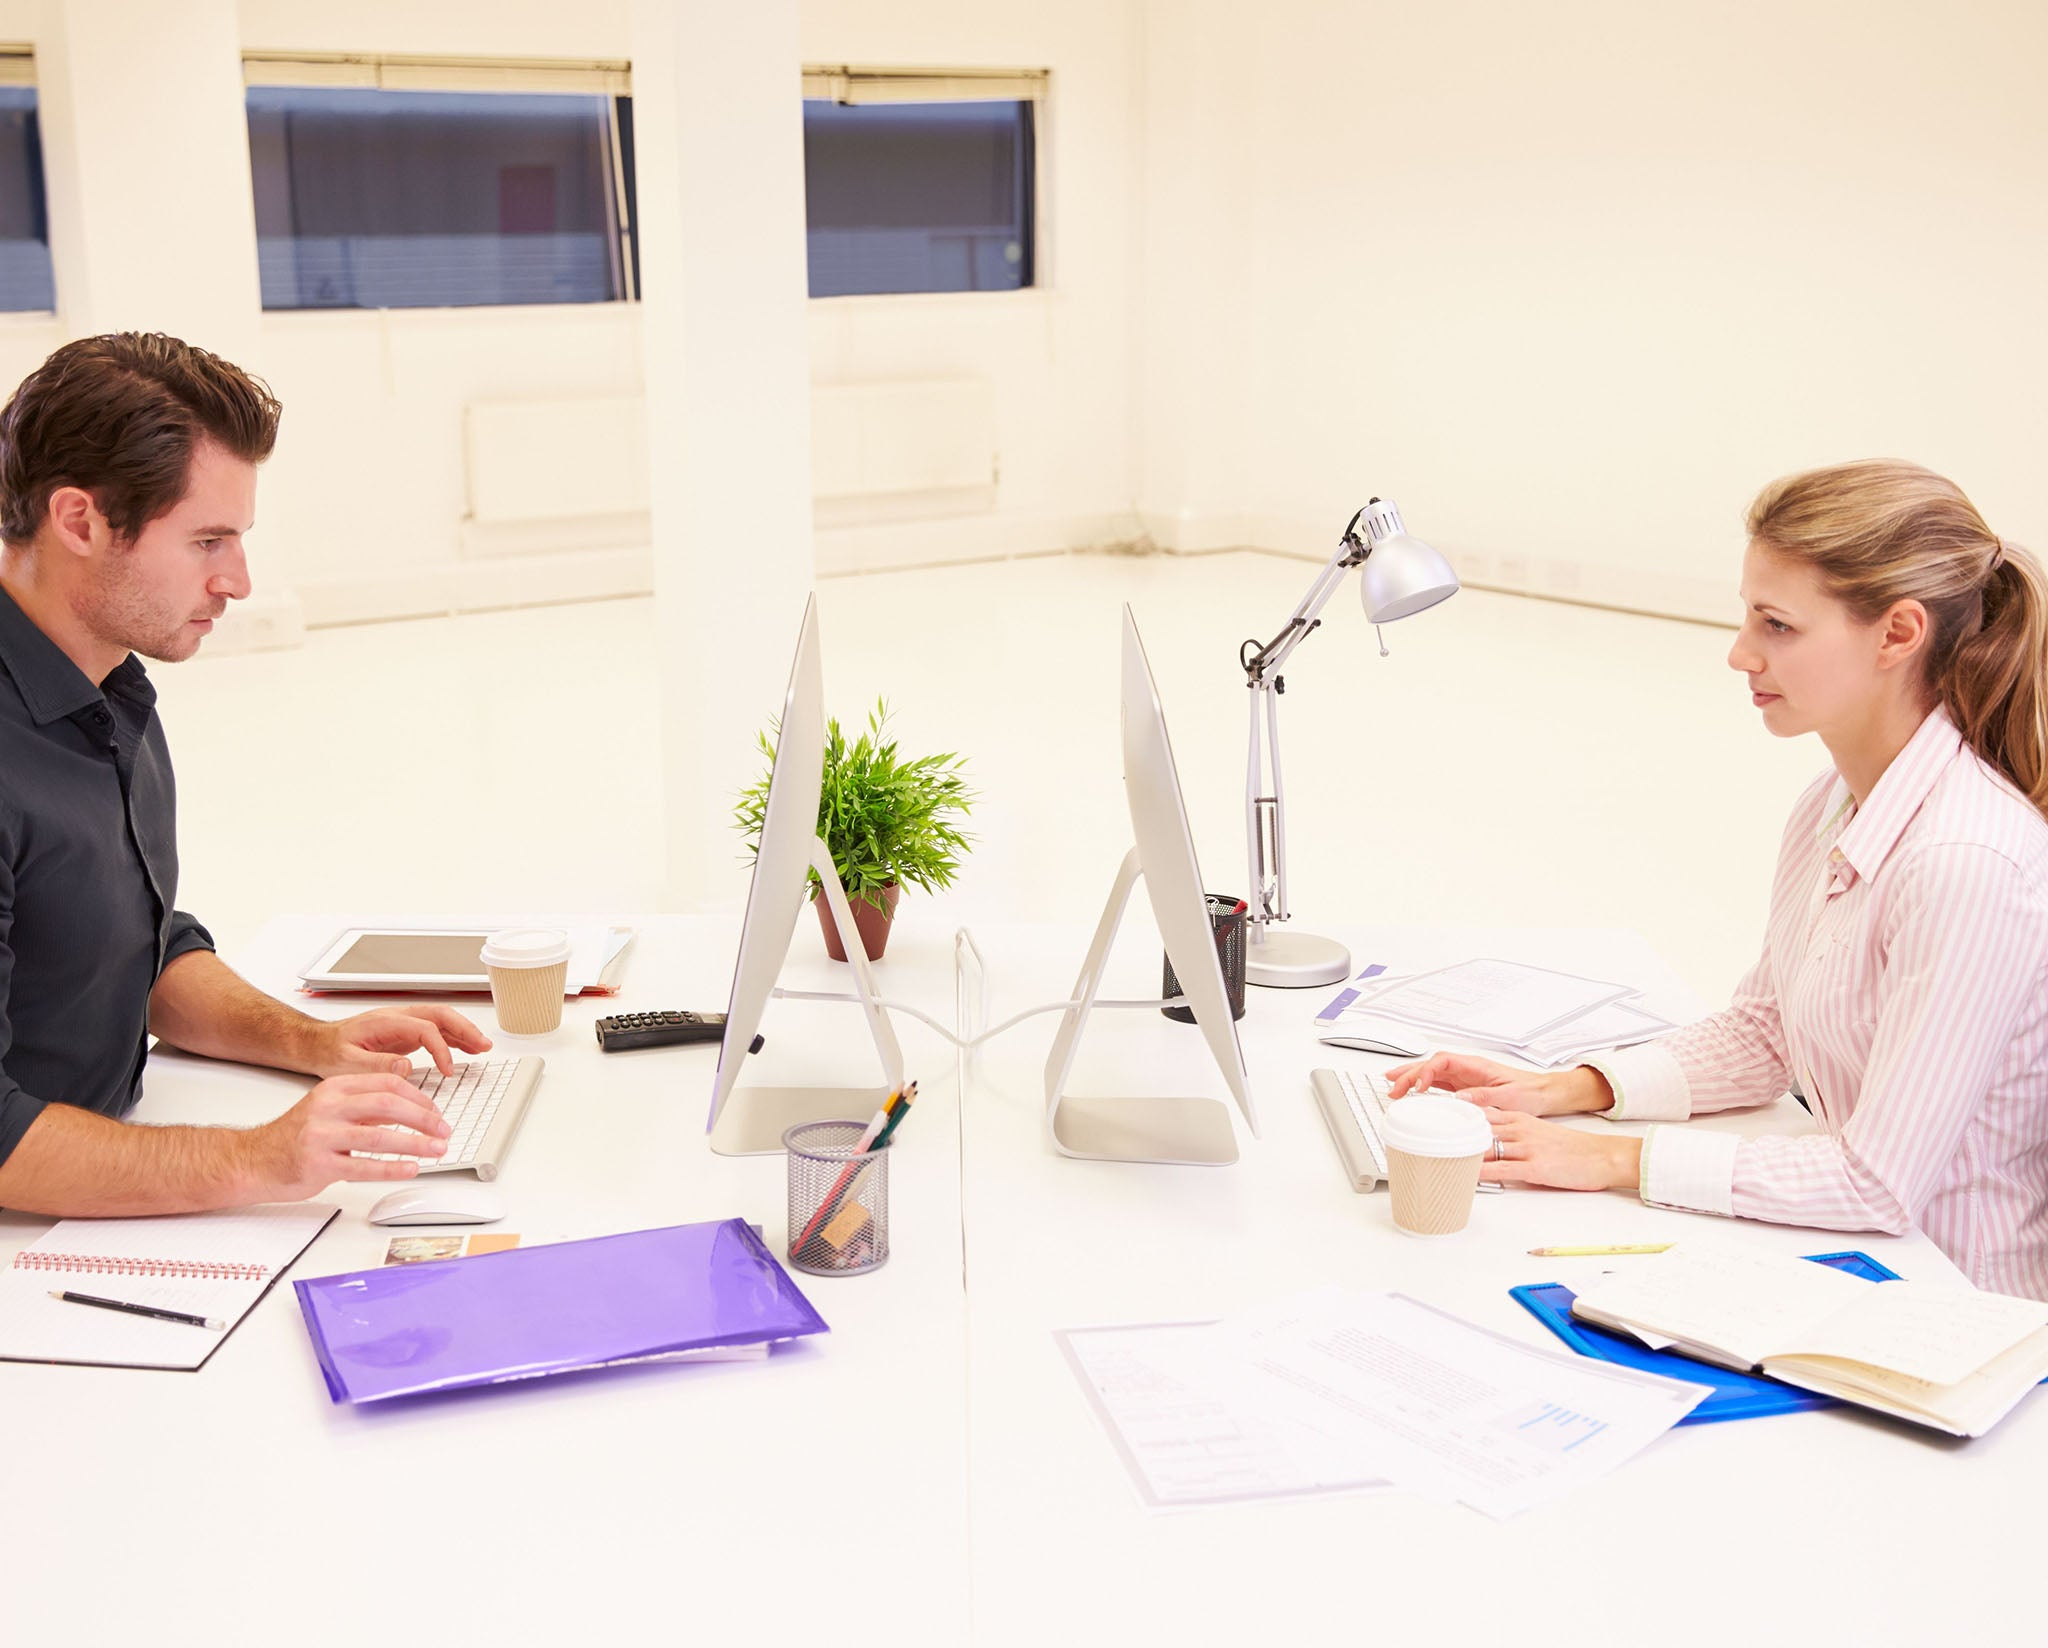 Women Job Interview Candidates More Than Three Times As